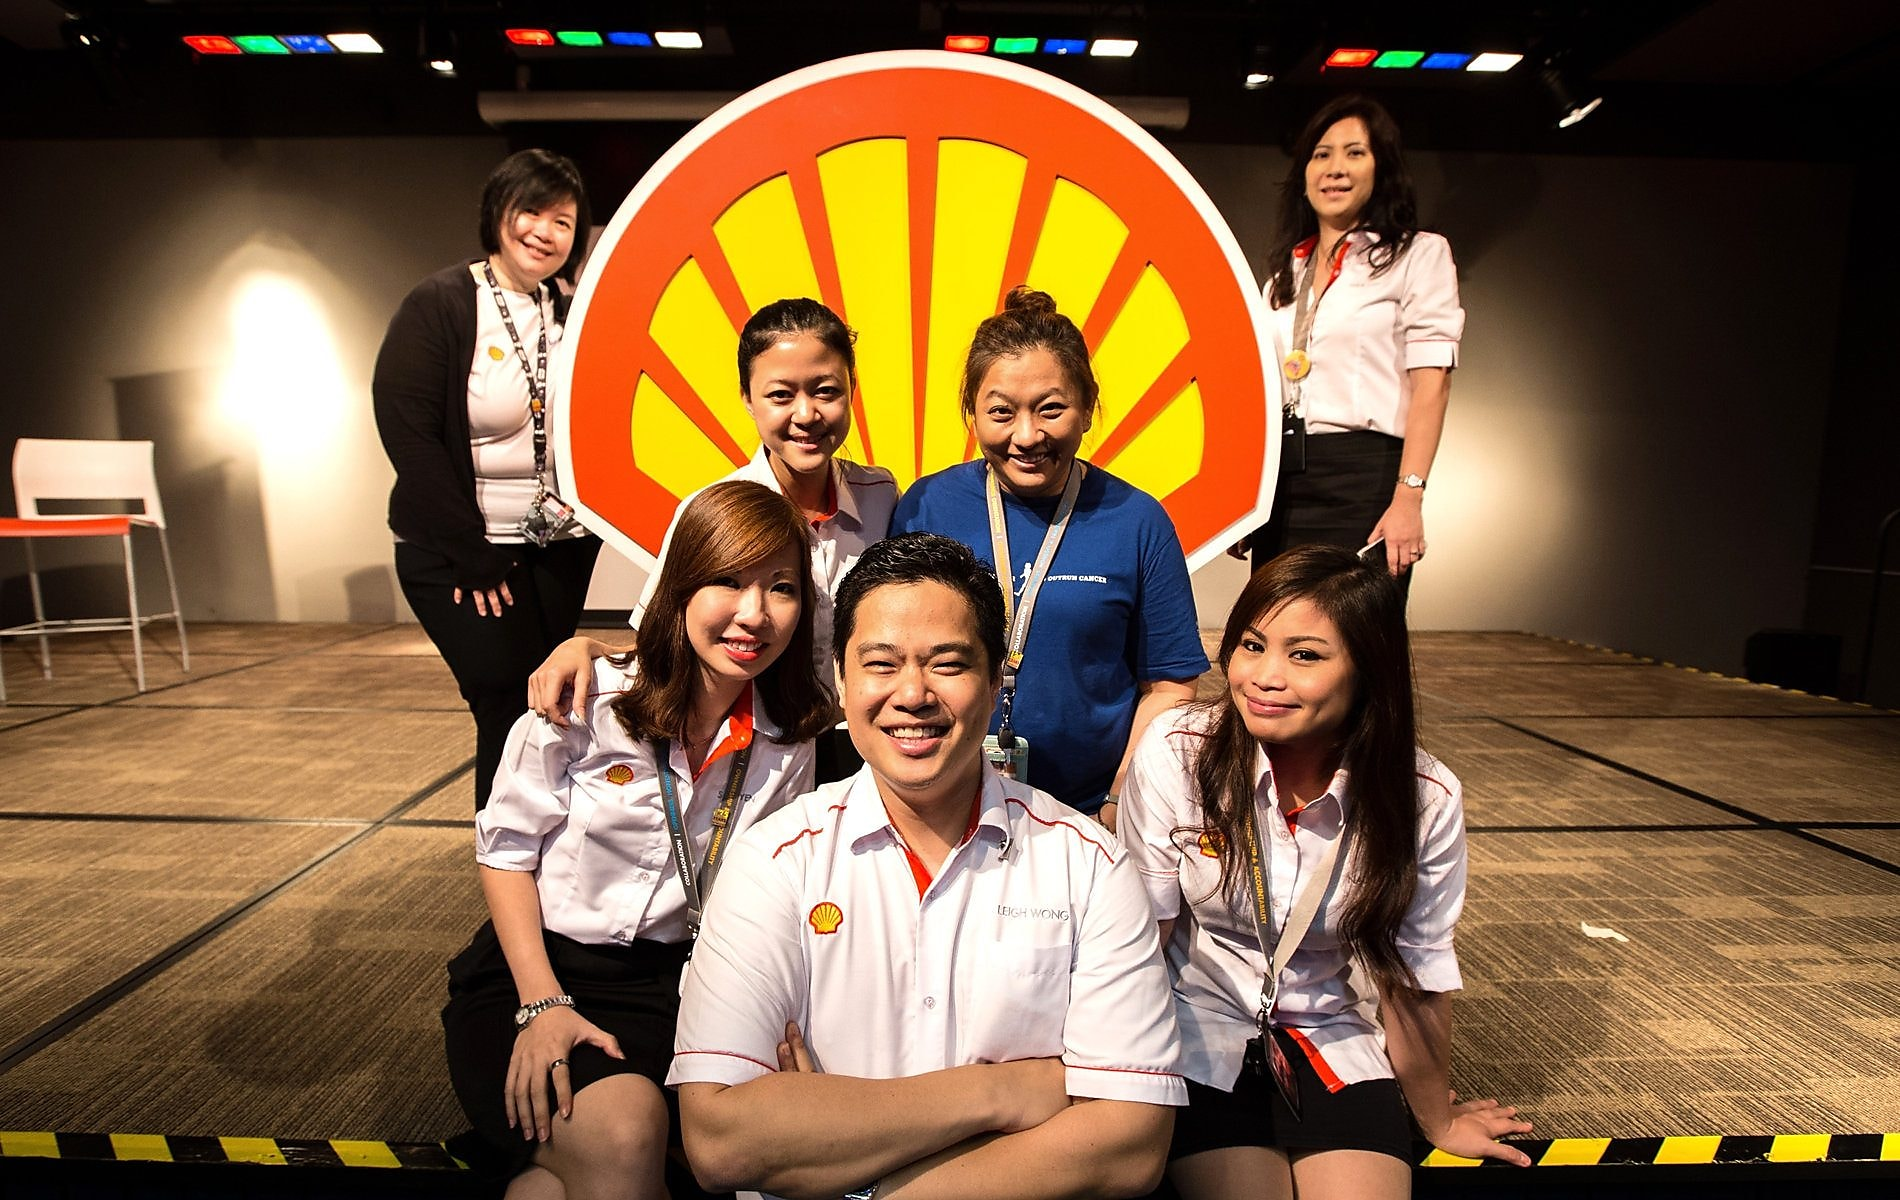 Siew Yen and colleagues pose in front of the Shell pecten